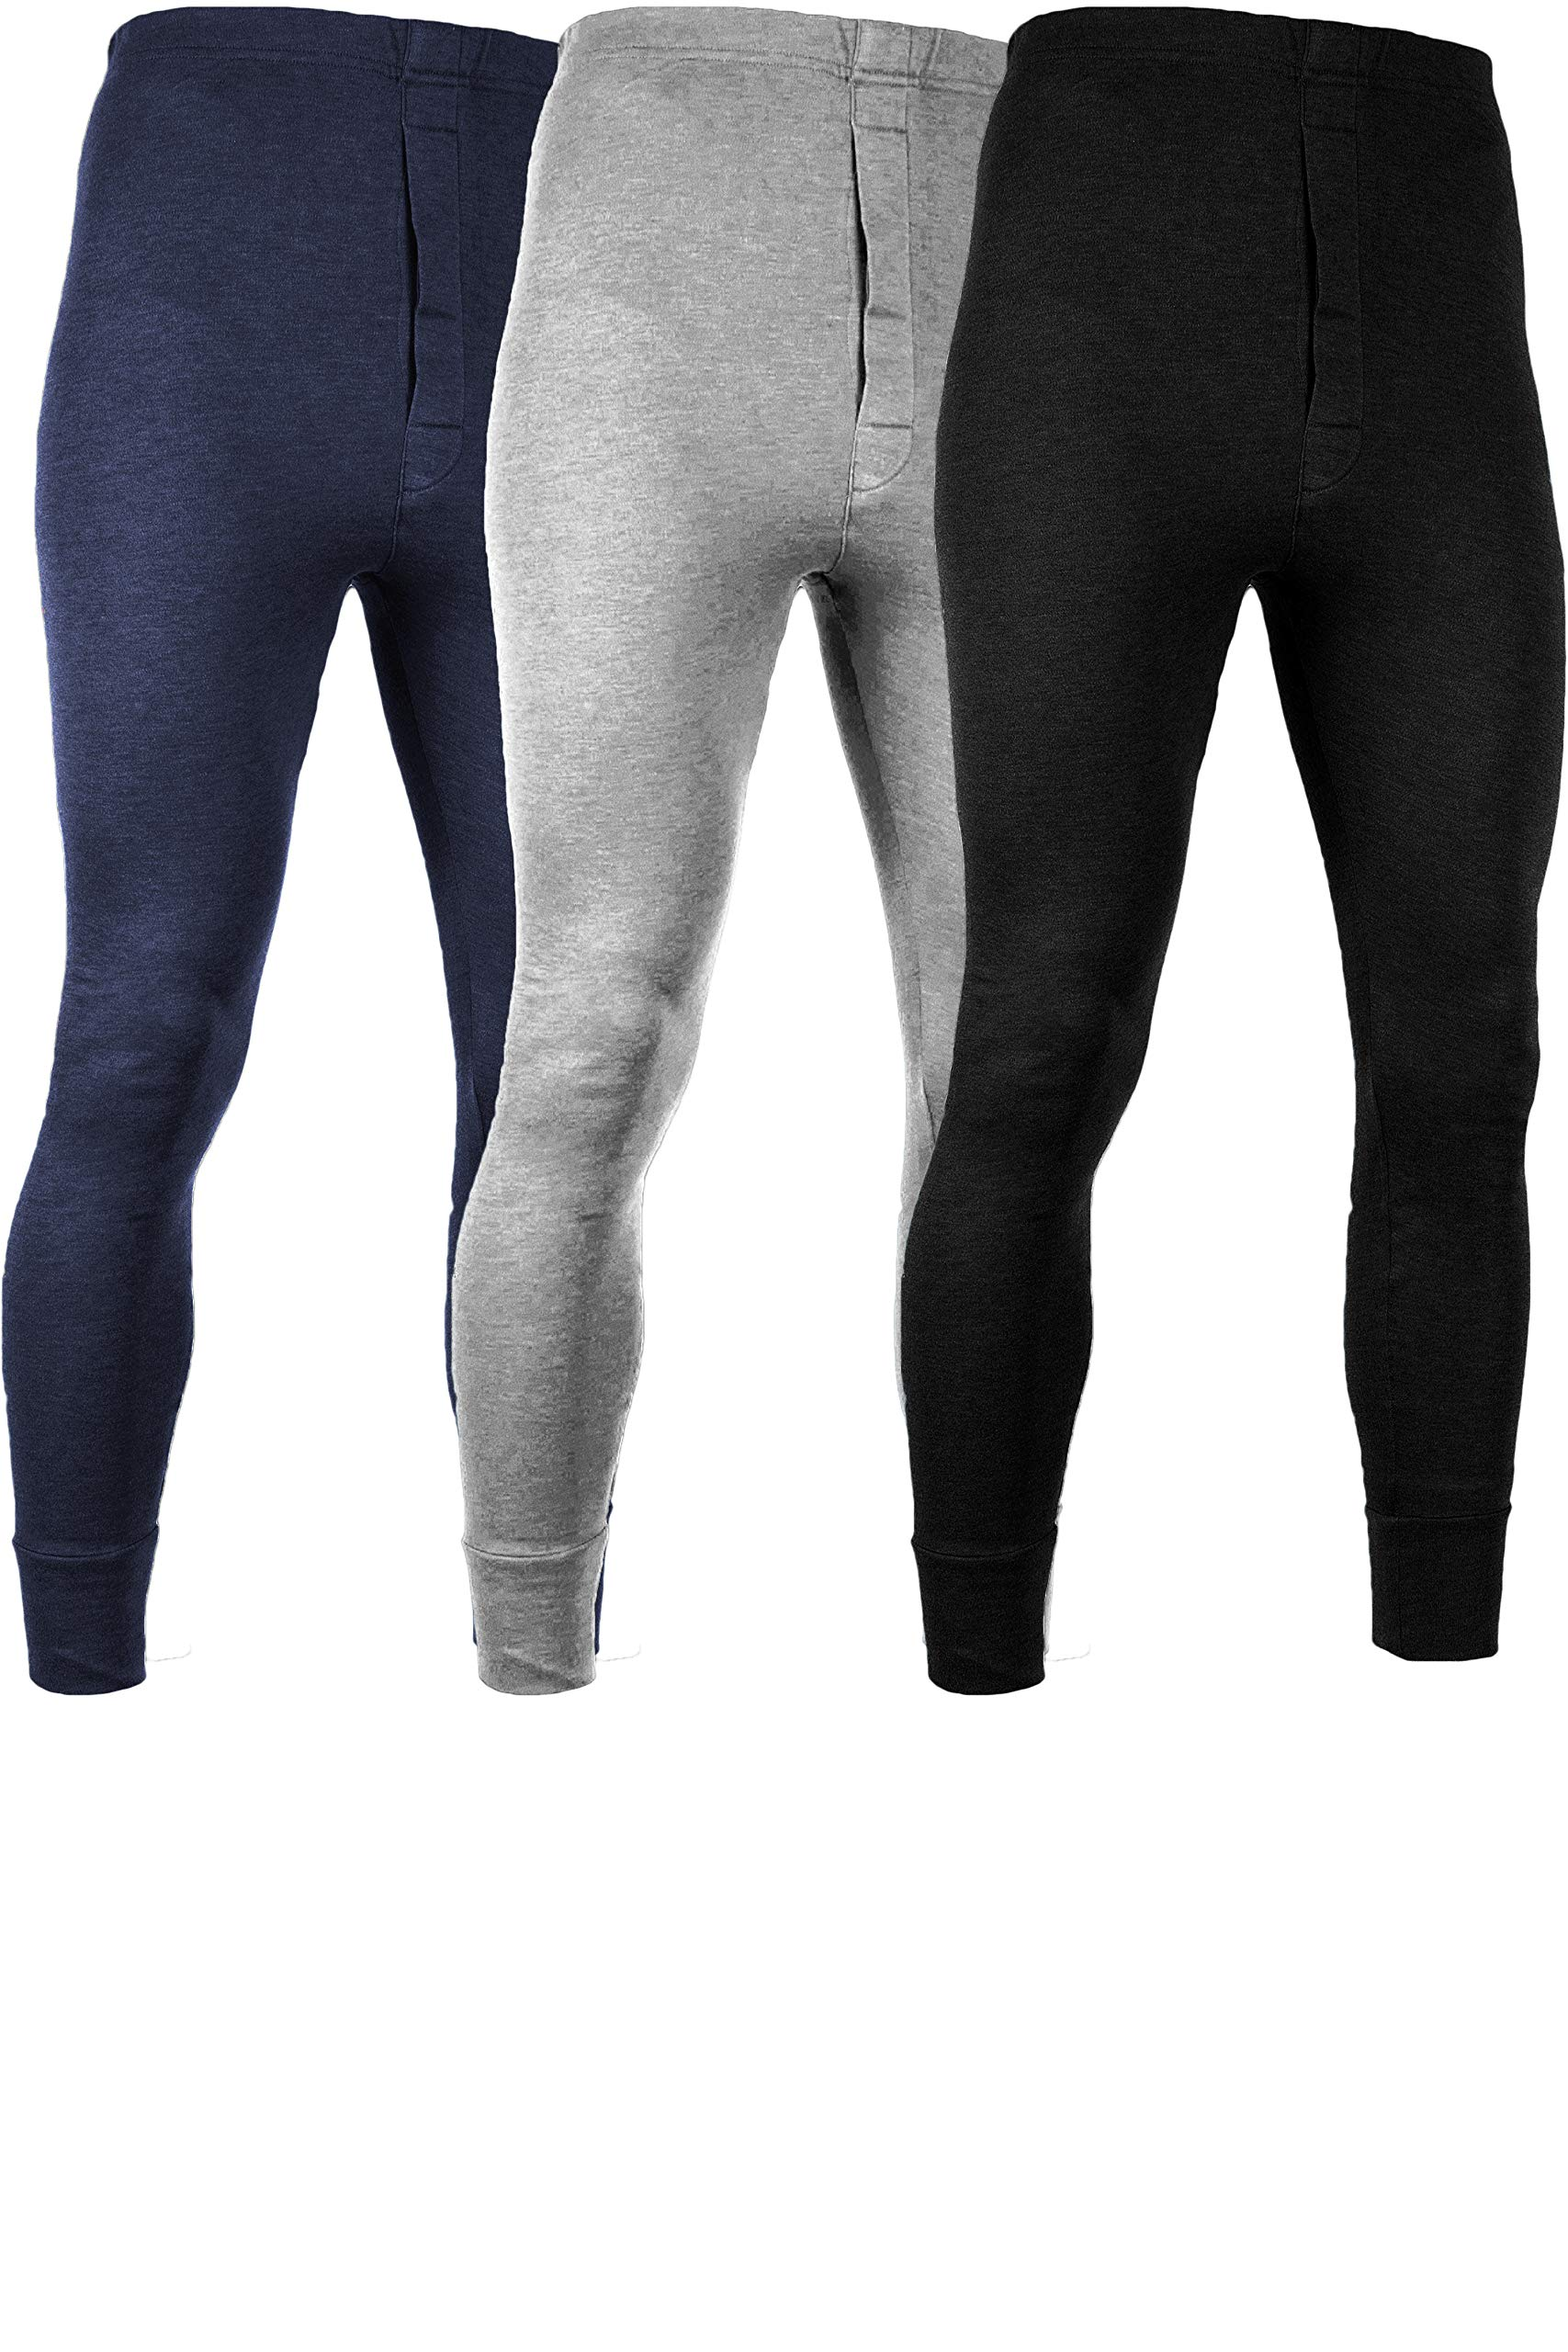 Andrew Scott Men's 3 Pack Premium Cotton Base Layer Long Thermal Underwear Pants (3 Pack - Black/Grey/Navy, XX-Large) by Andrew Scott